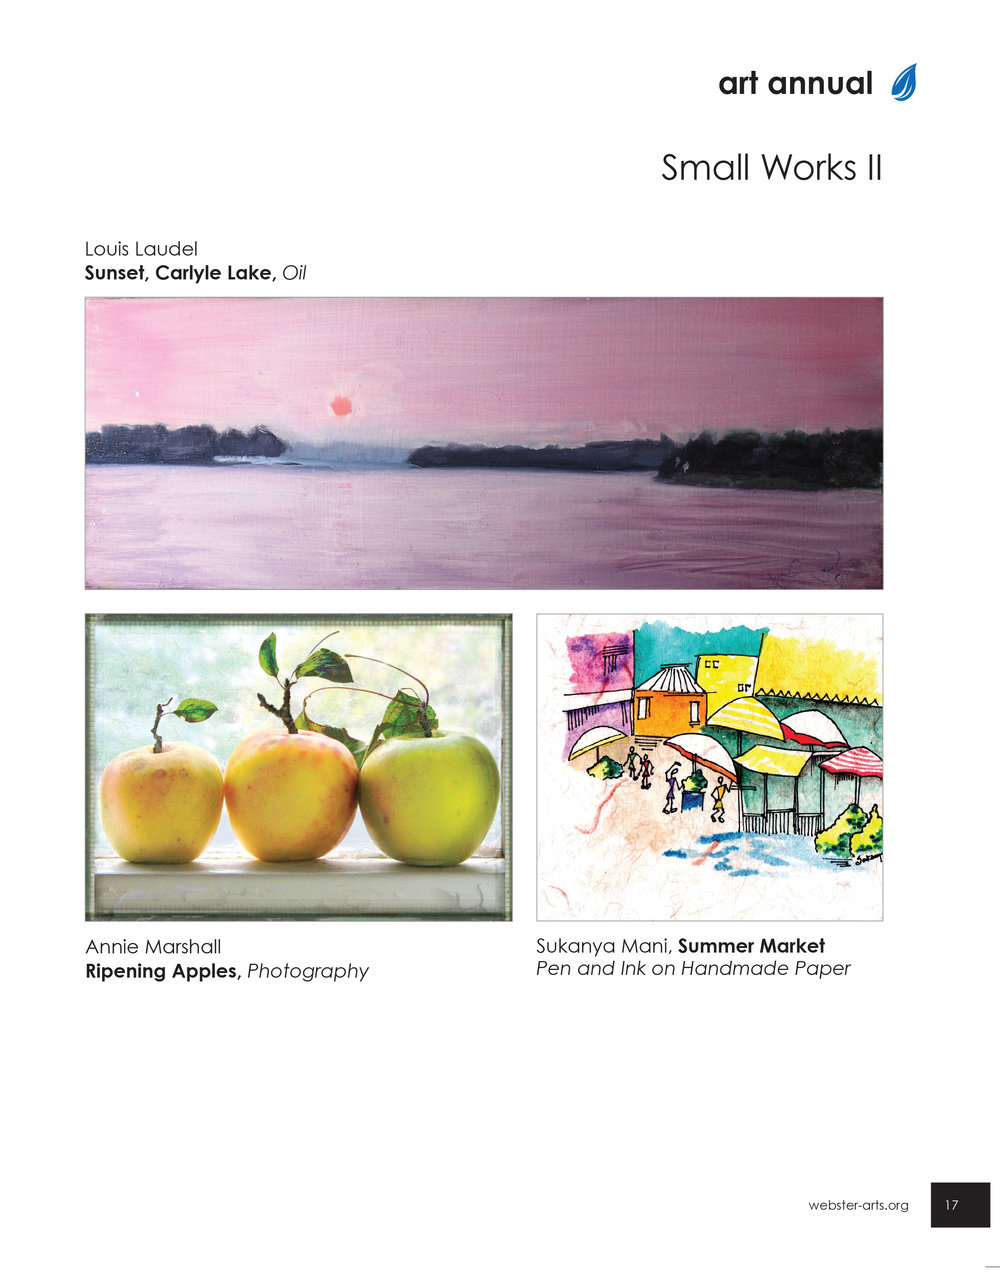 Art Annual, Small Works